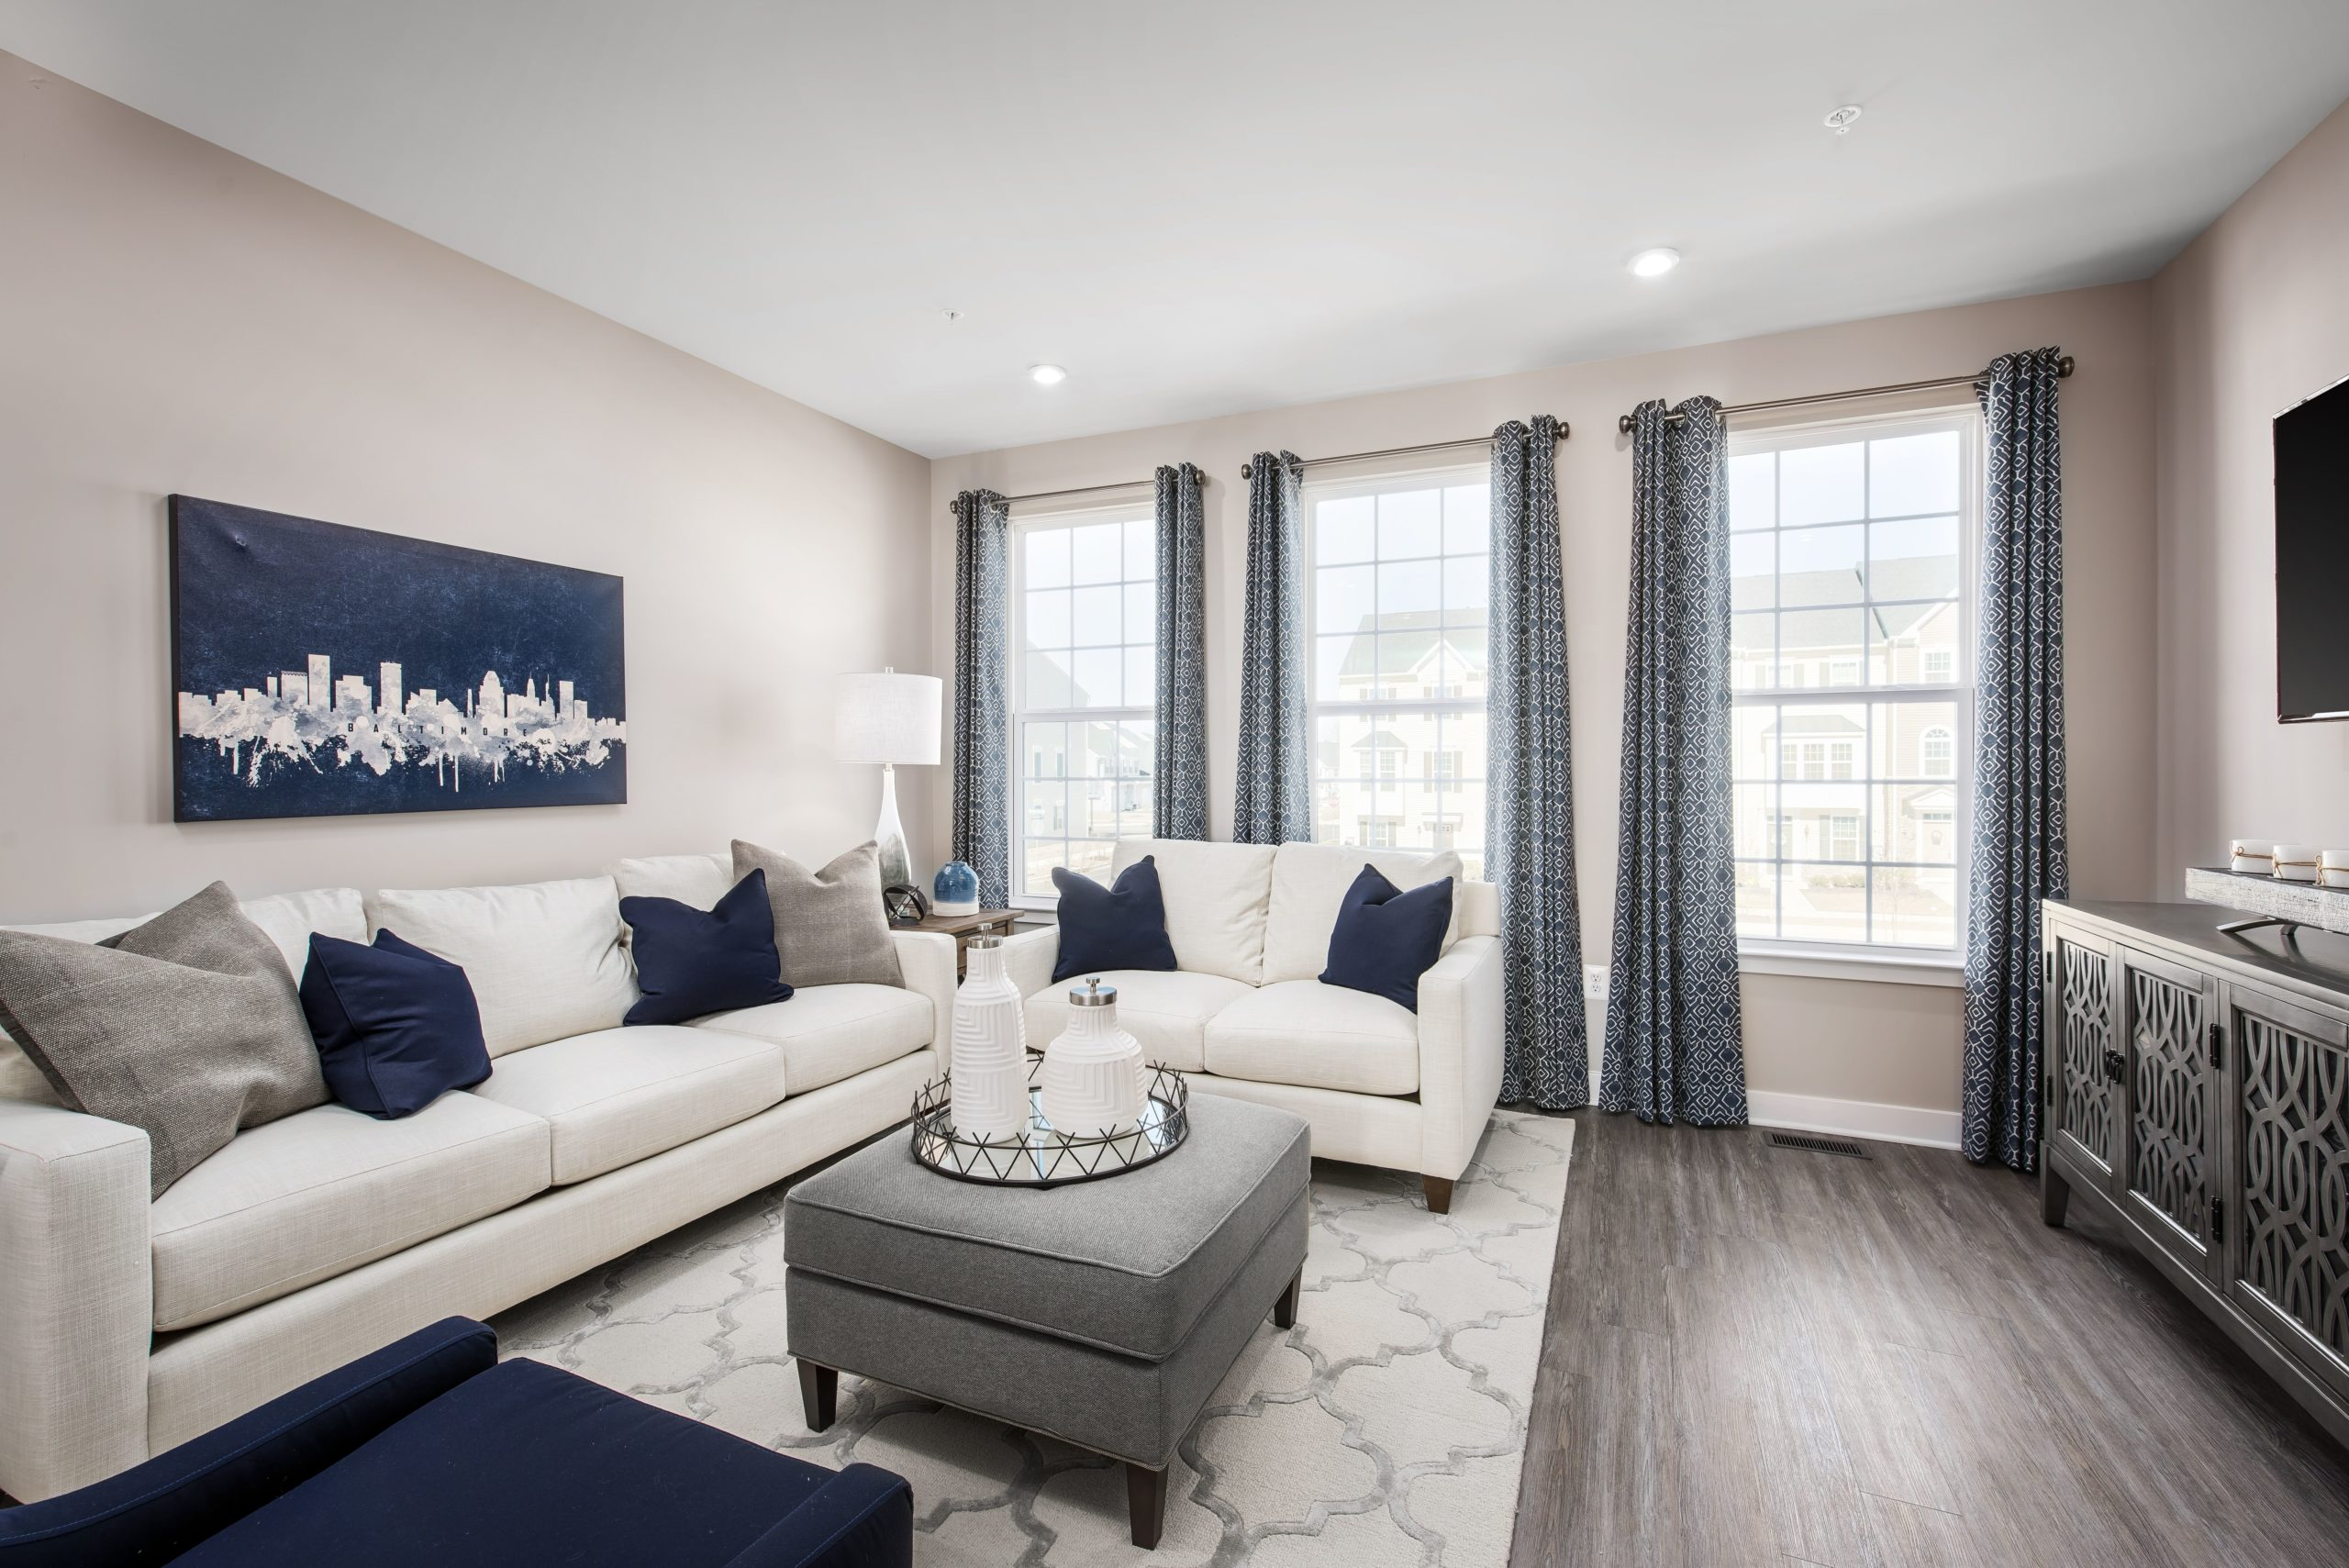 discover tanyard shores, a community of new construction homes in anne arundel county